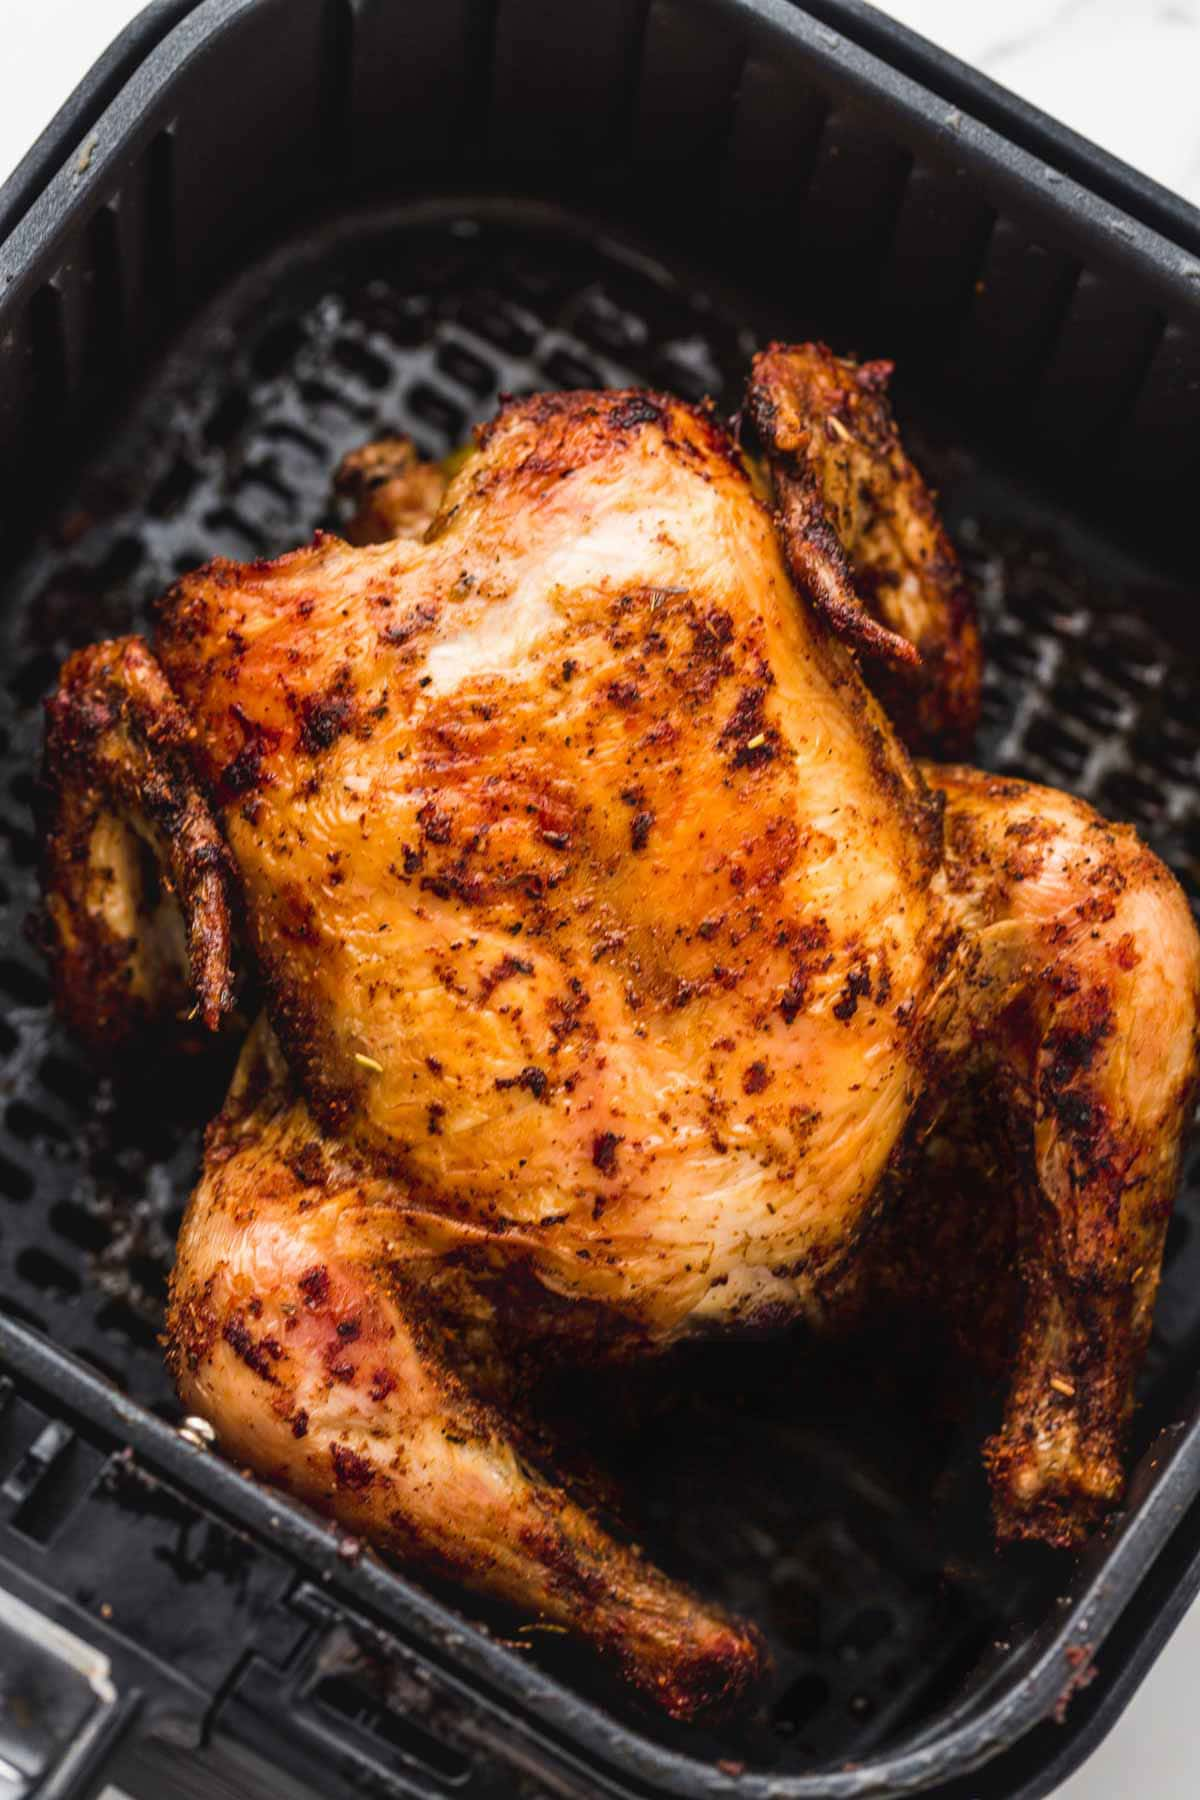 A roasted whole chicken in the air fryer basket